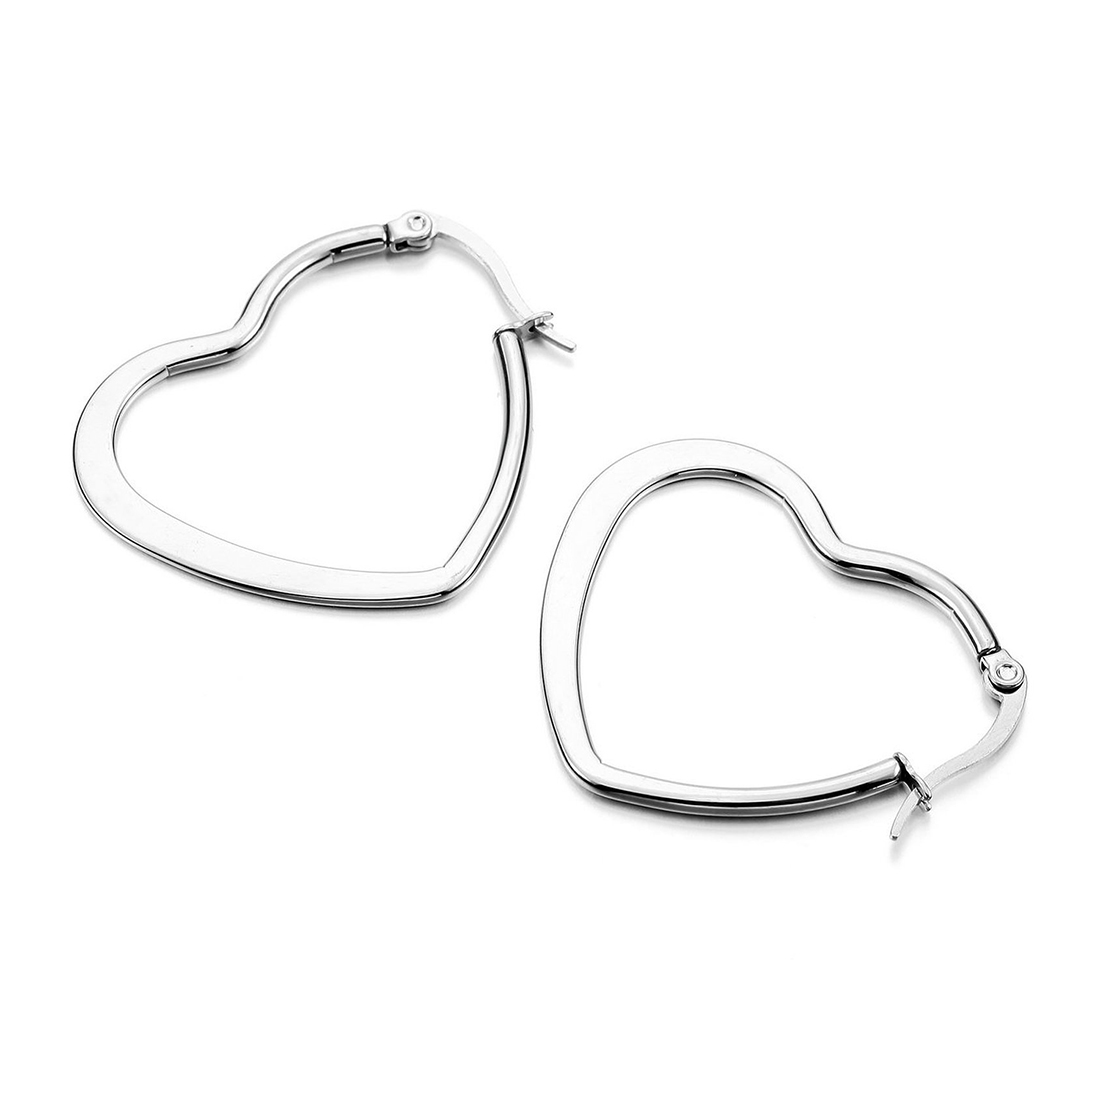 Stainless Steel Stud Plugs Hoop Earrings Ear Studs Silver